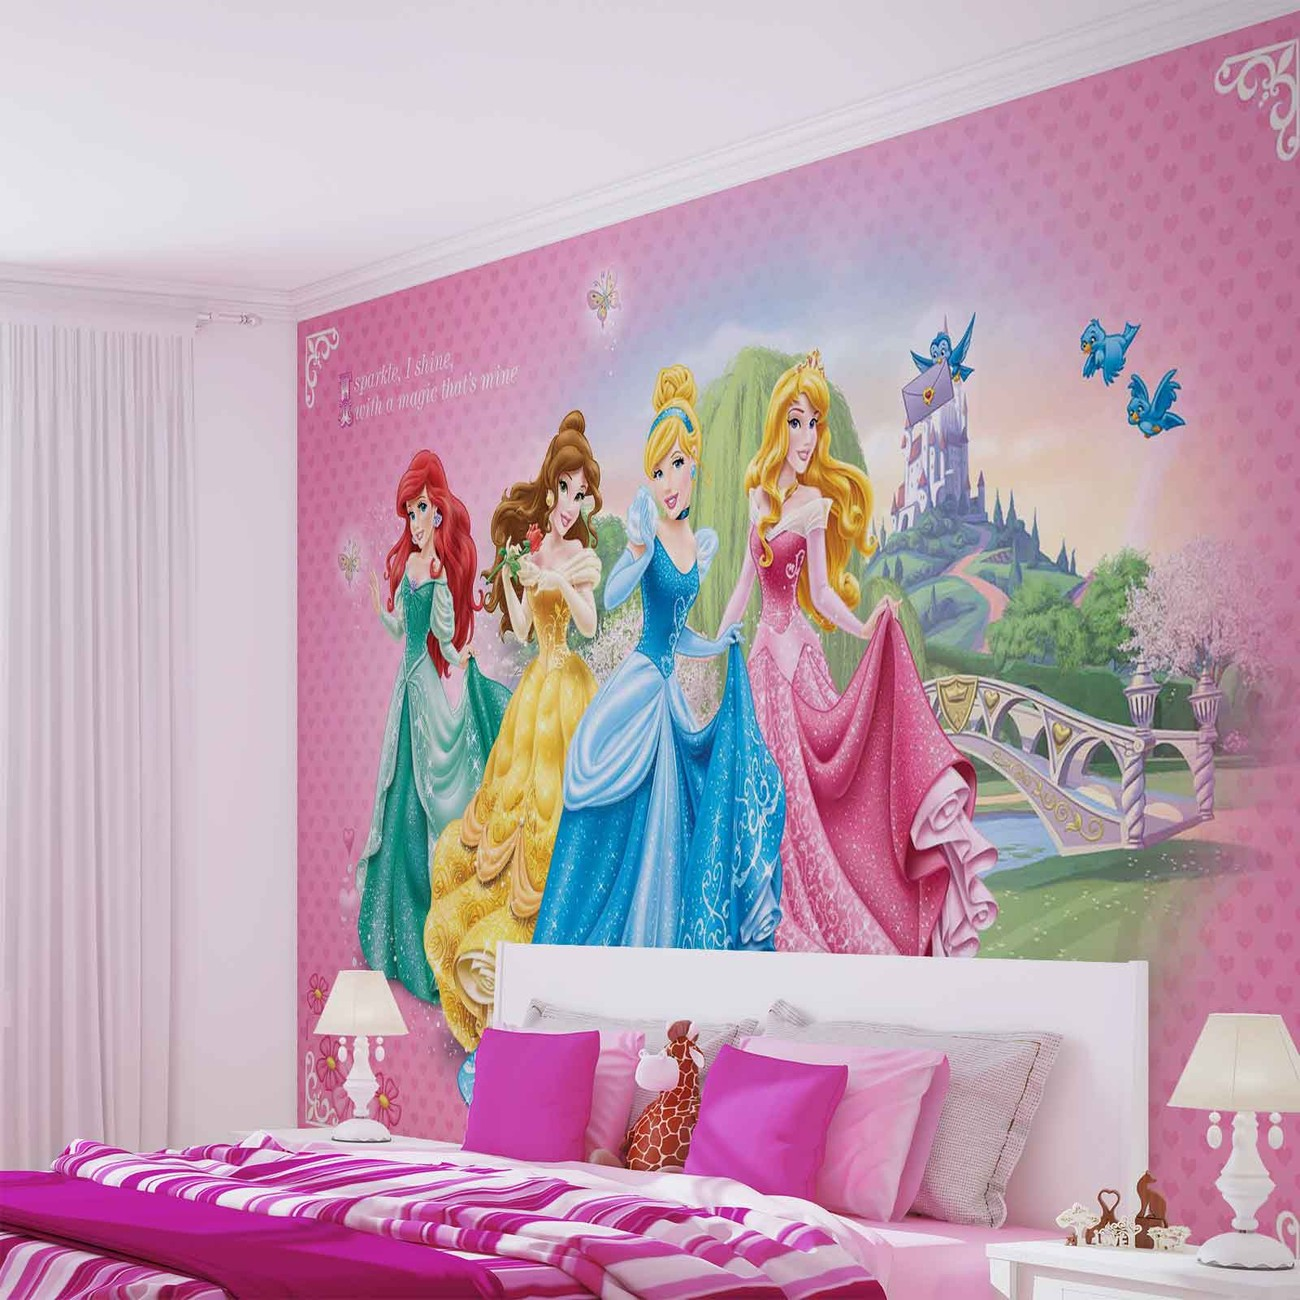 Disney princesses cinderella belle wall paper mural buy for Cinderella wall mural